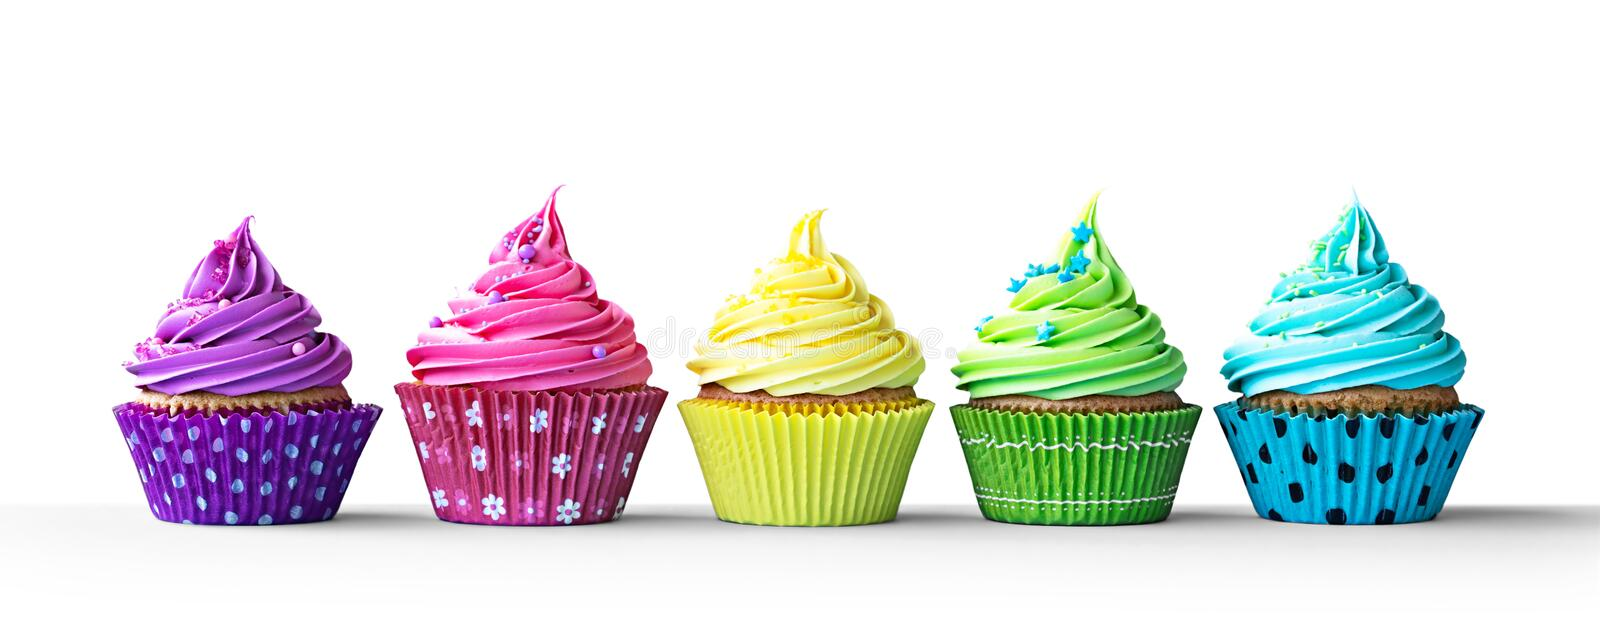 Colorful cupcakes on white. Row of colorful cupcakes isolated on a white background